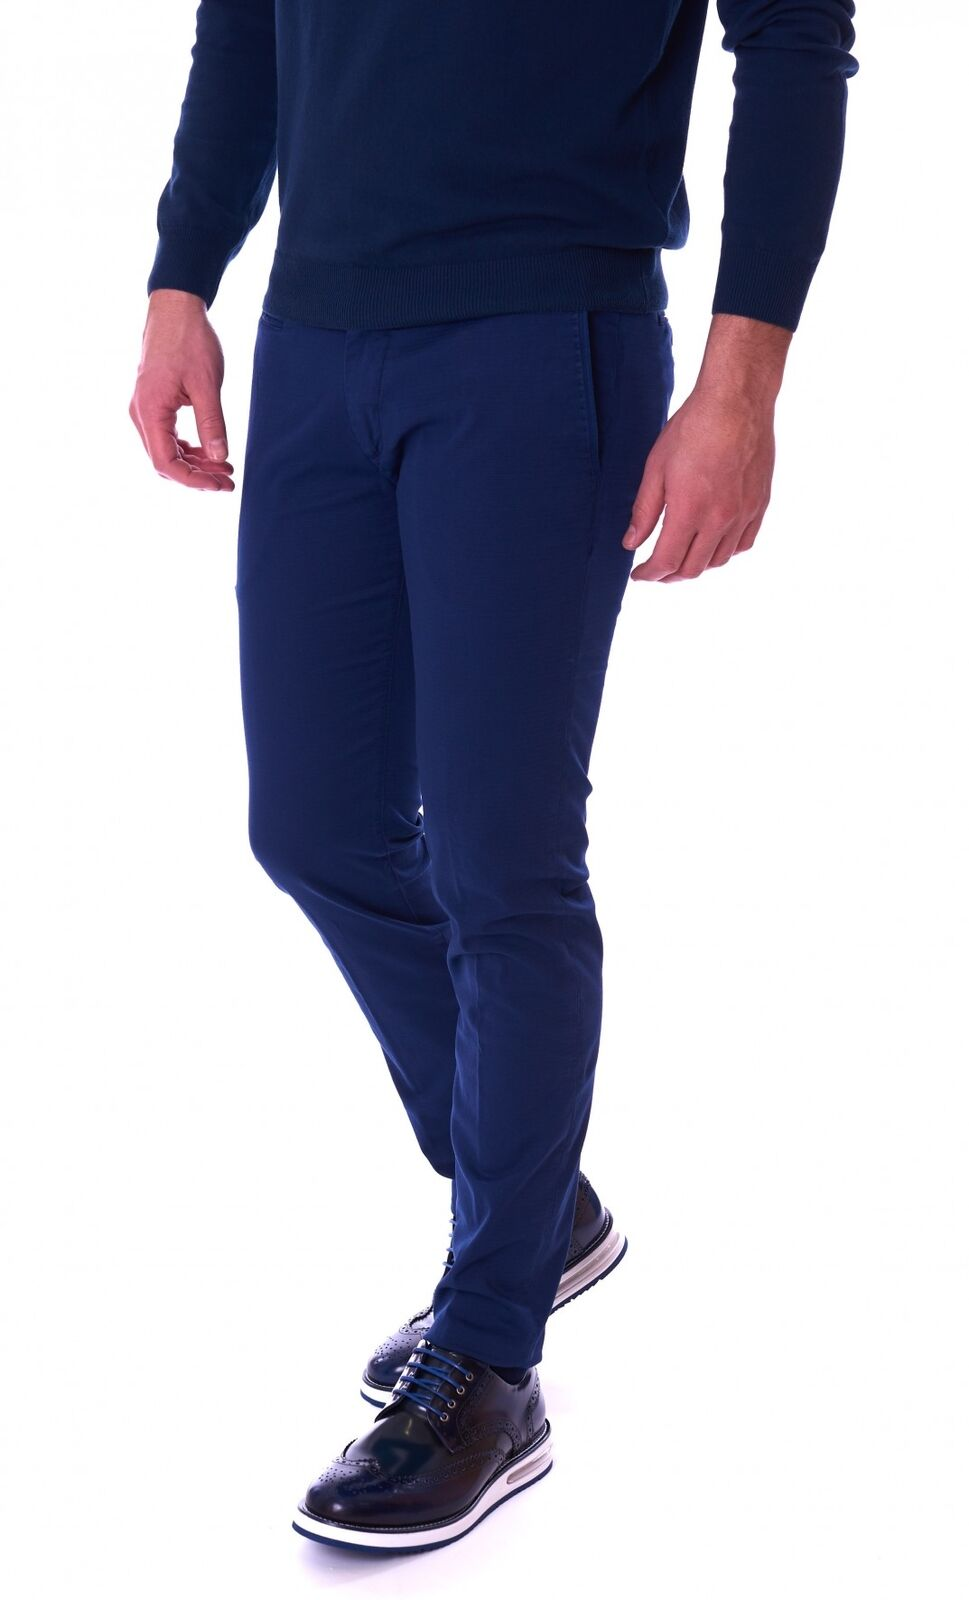 PANTALONE RE-HASH MUCHA ARMATURATO blue RE-HASH P037-2252-blue-PE18